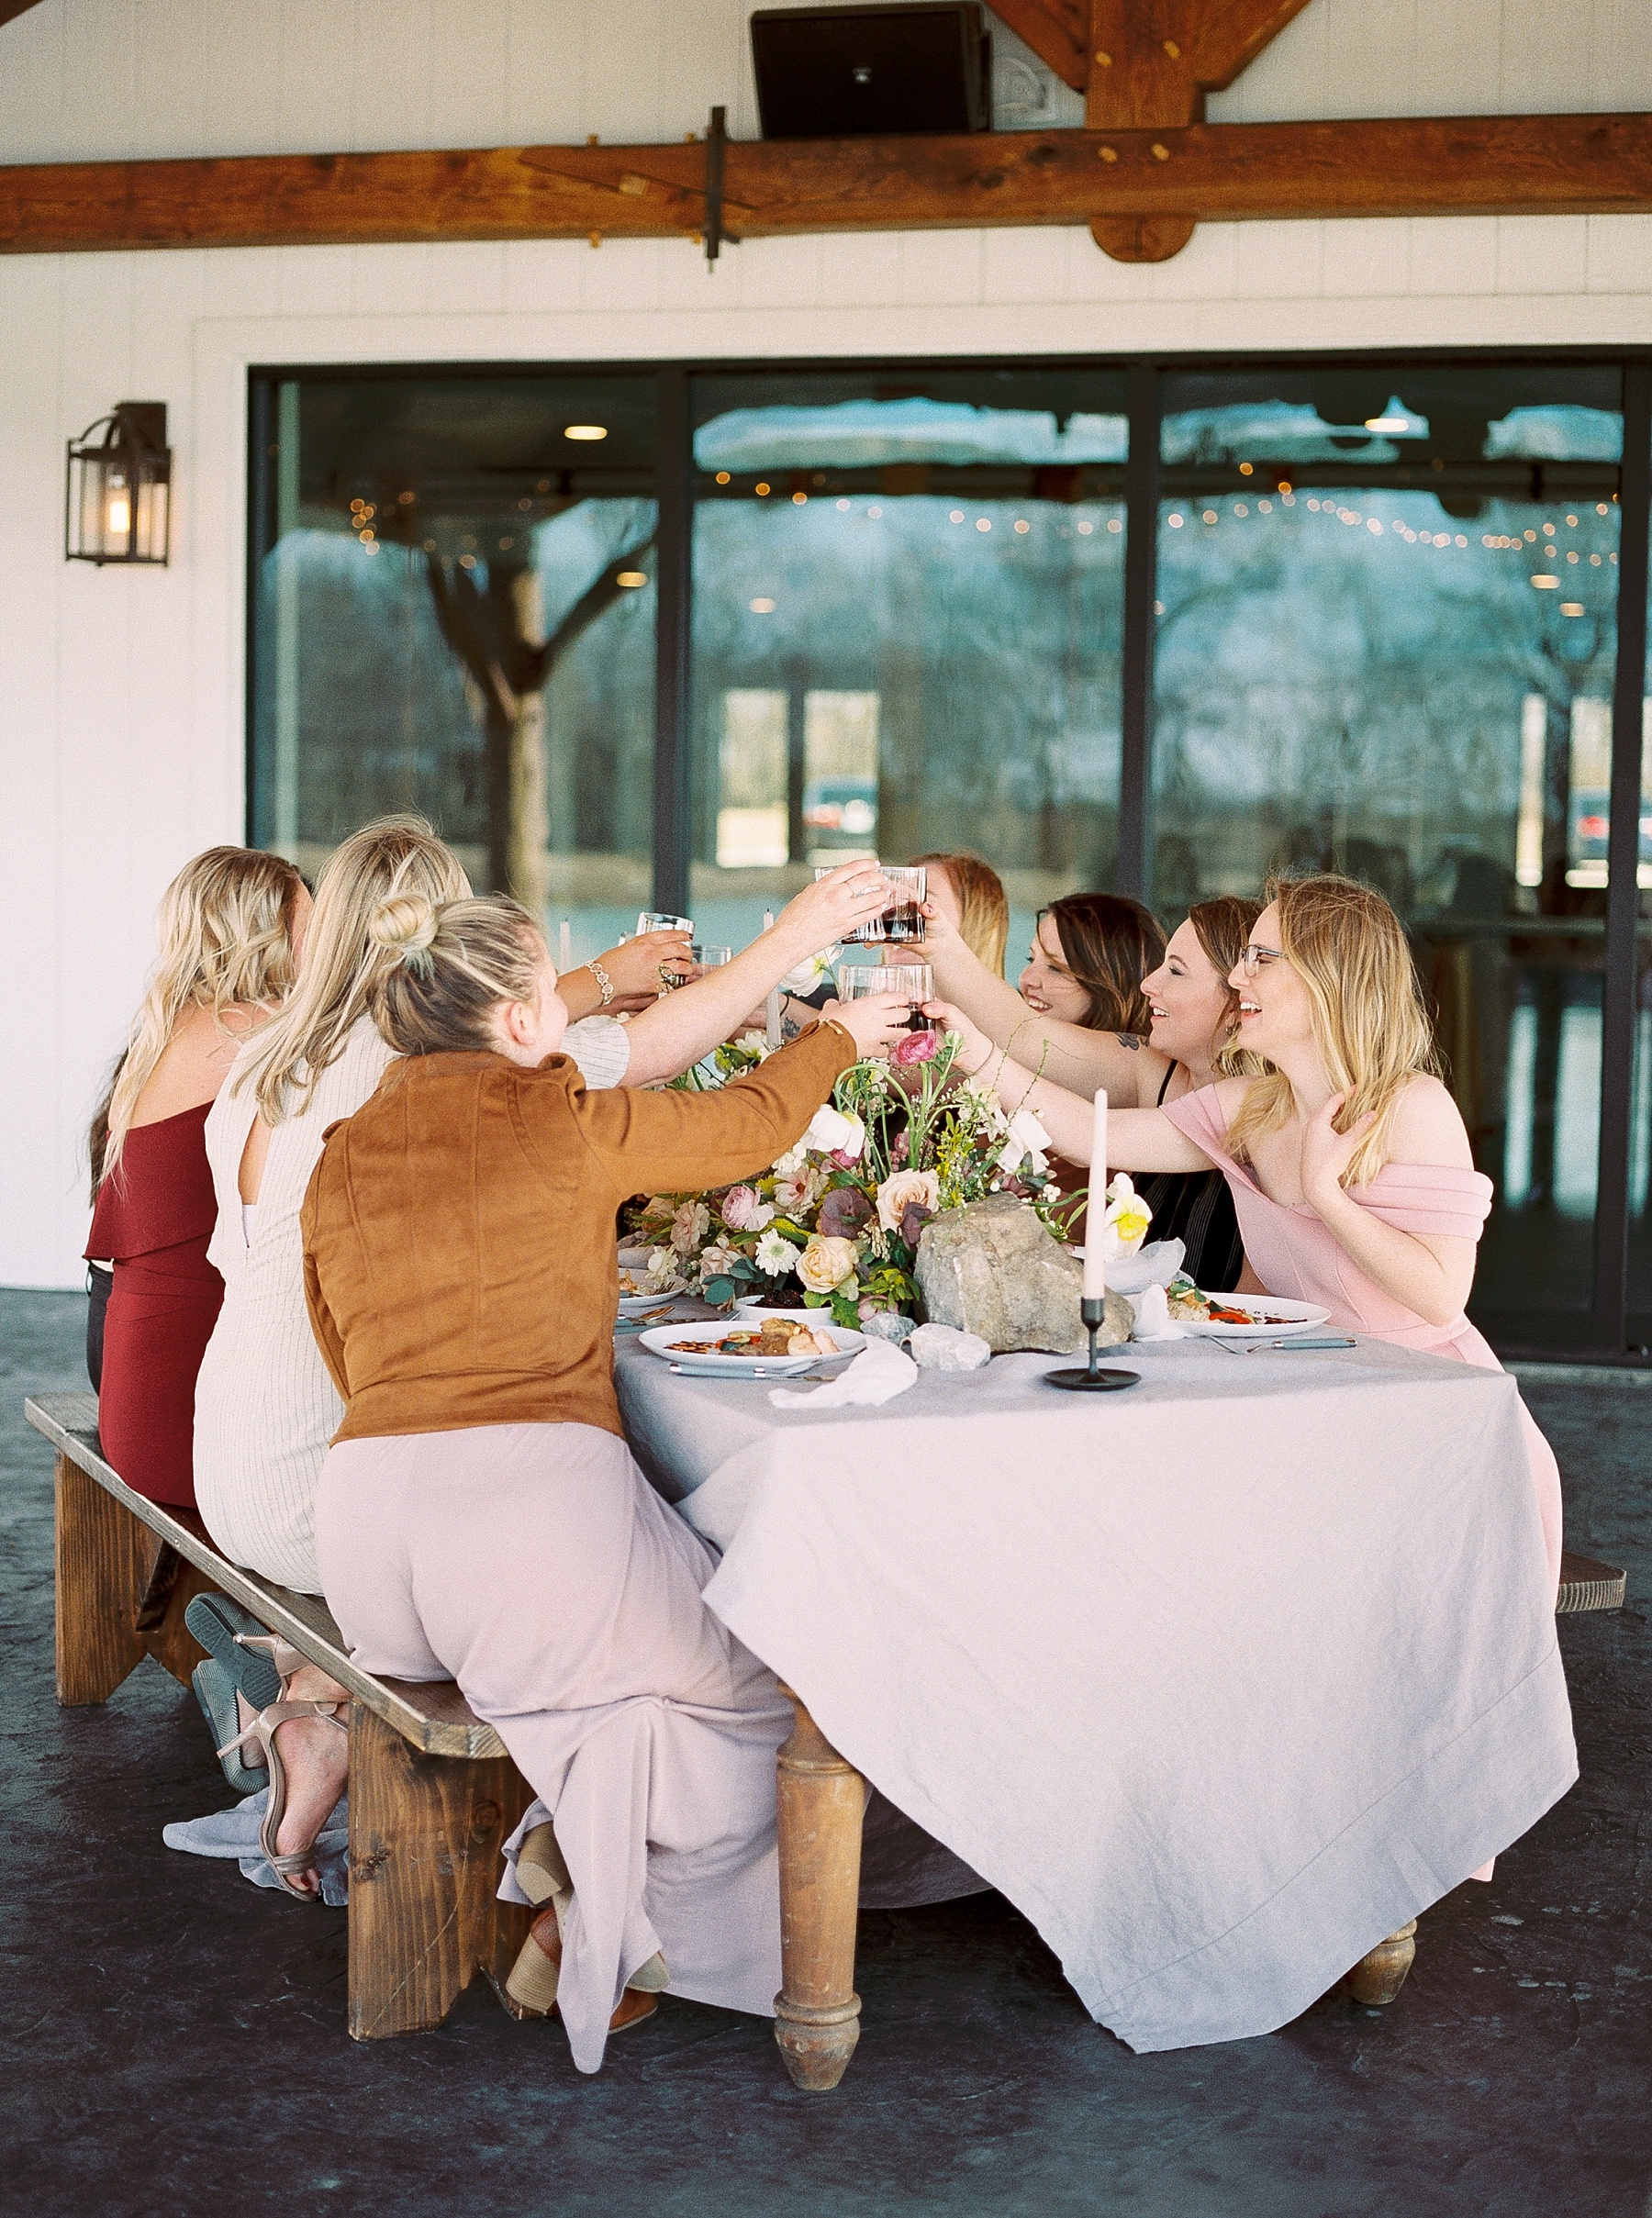 Lakeside Sunset Wedding with Magnificent Abundance of Blooms at Emerson Fields by Kelsi Kliethermes Photography Best Missouri and Maui Wedding Photographer_0020.jpg